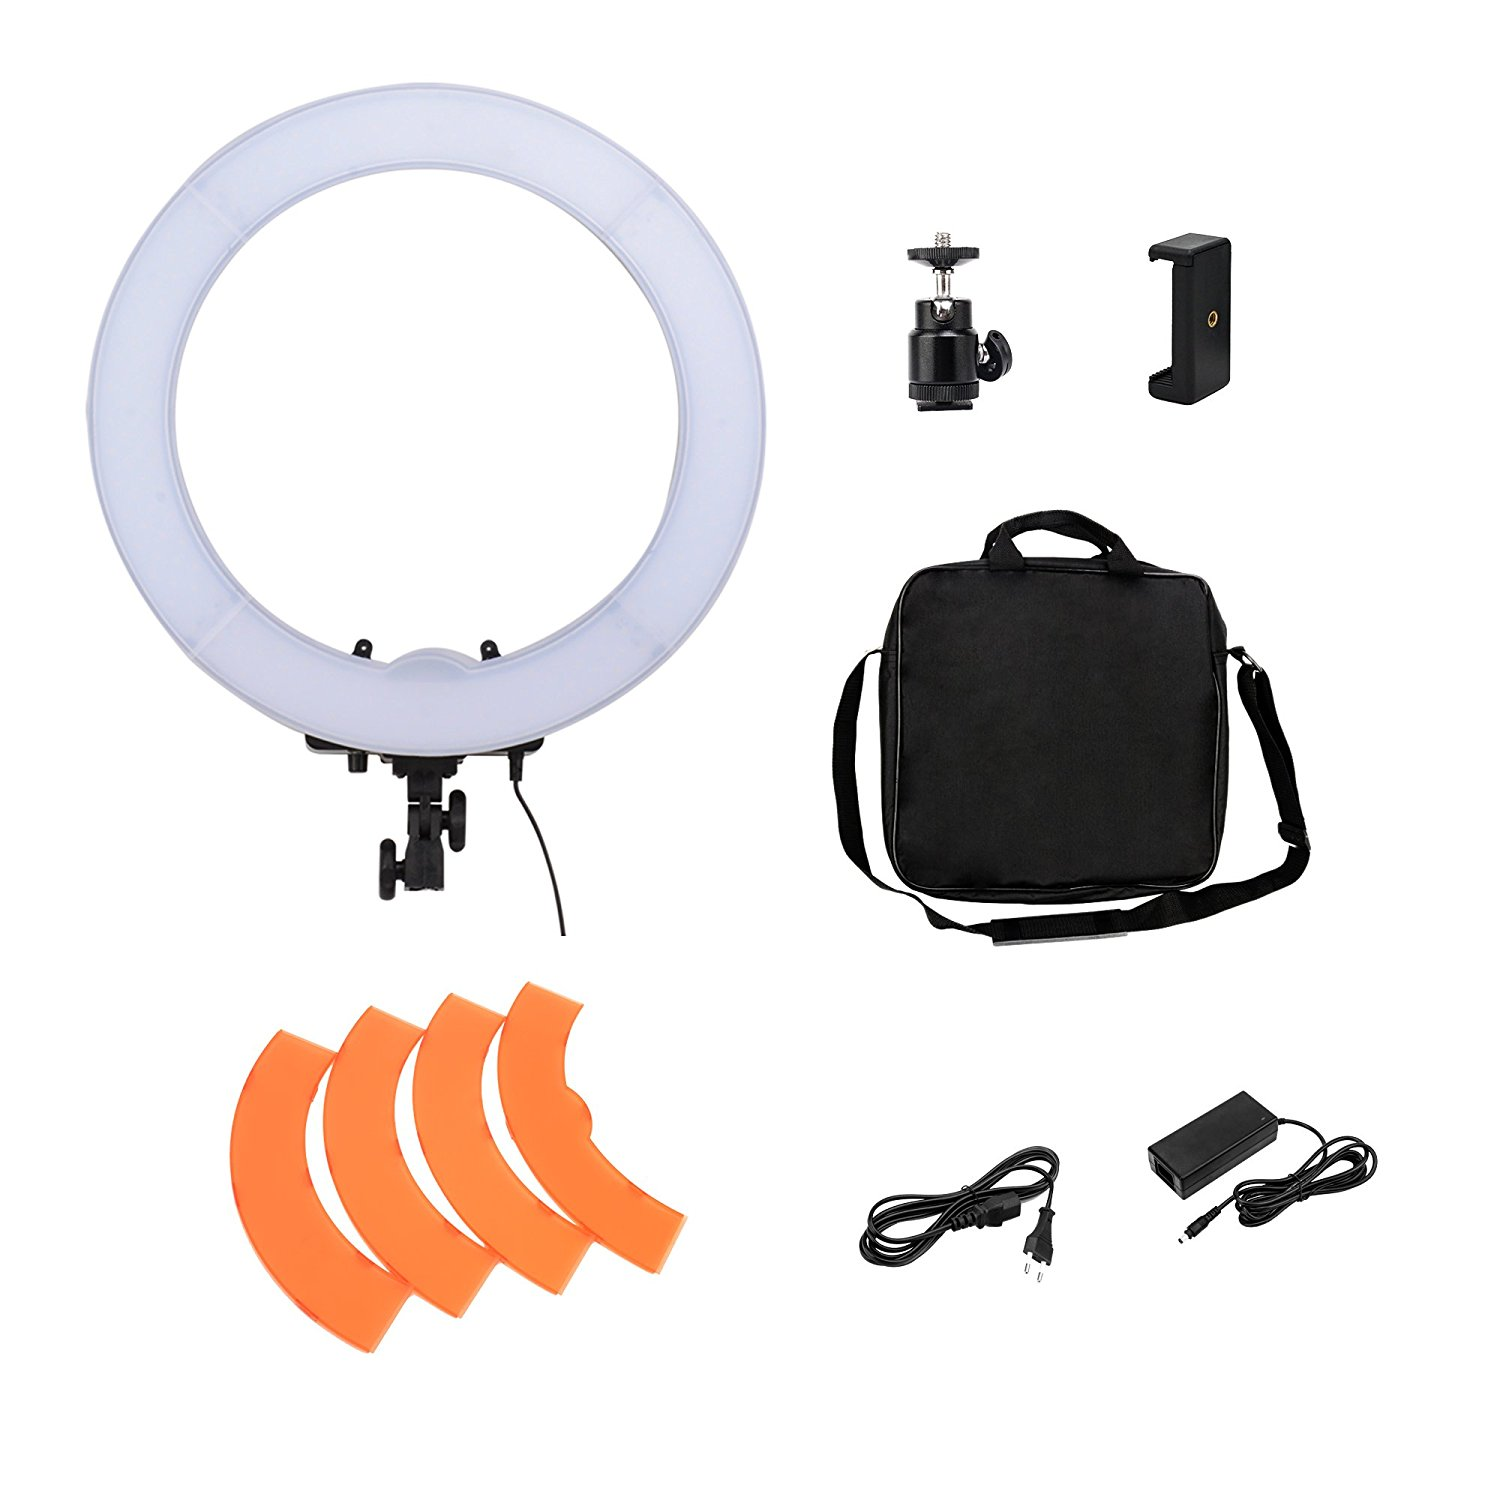 "BONFOTO 18"" 55W 5500K Dimmable LED Photography YouTube Live Anchor Fill Ring Light, Phone Clamp, Ball Head and Filter Adjustable for Makeup,Camera Smartphone Photo/Video,Portrait photography Shooting"